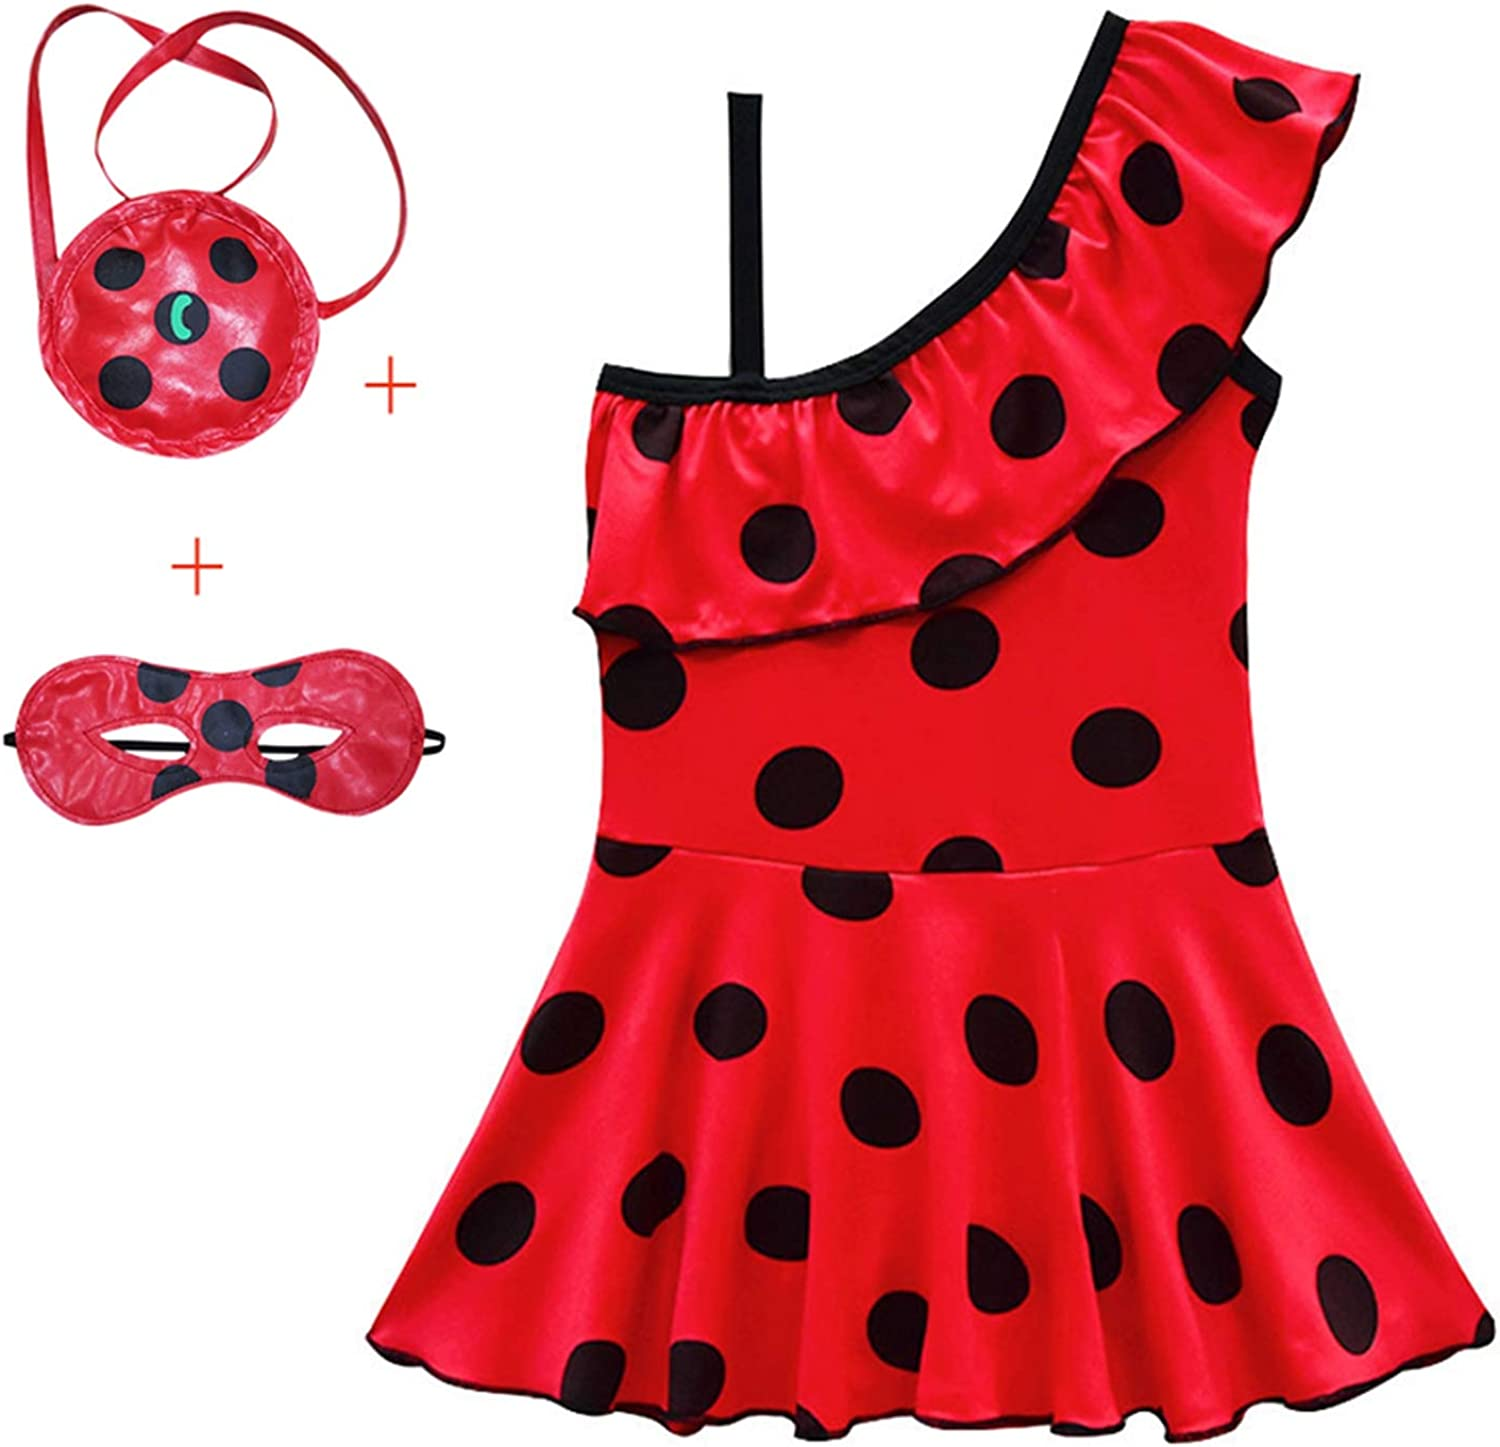 Swimwear Girls 2019 Ladybug Kids Bathing Suits One Piece Swim Suit Baby Bikini Children Swim-Wear Printed Mask Bag LOL Beachwear